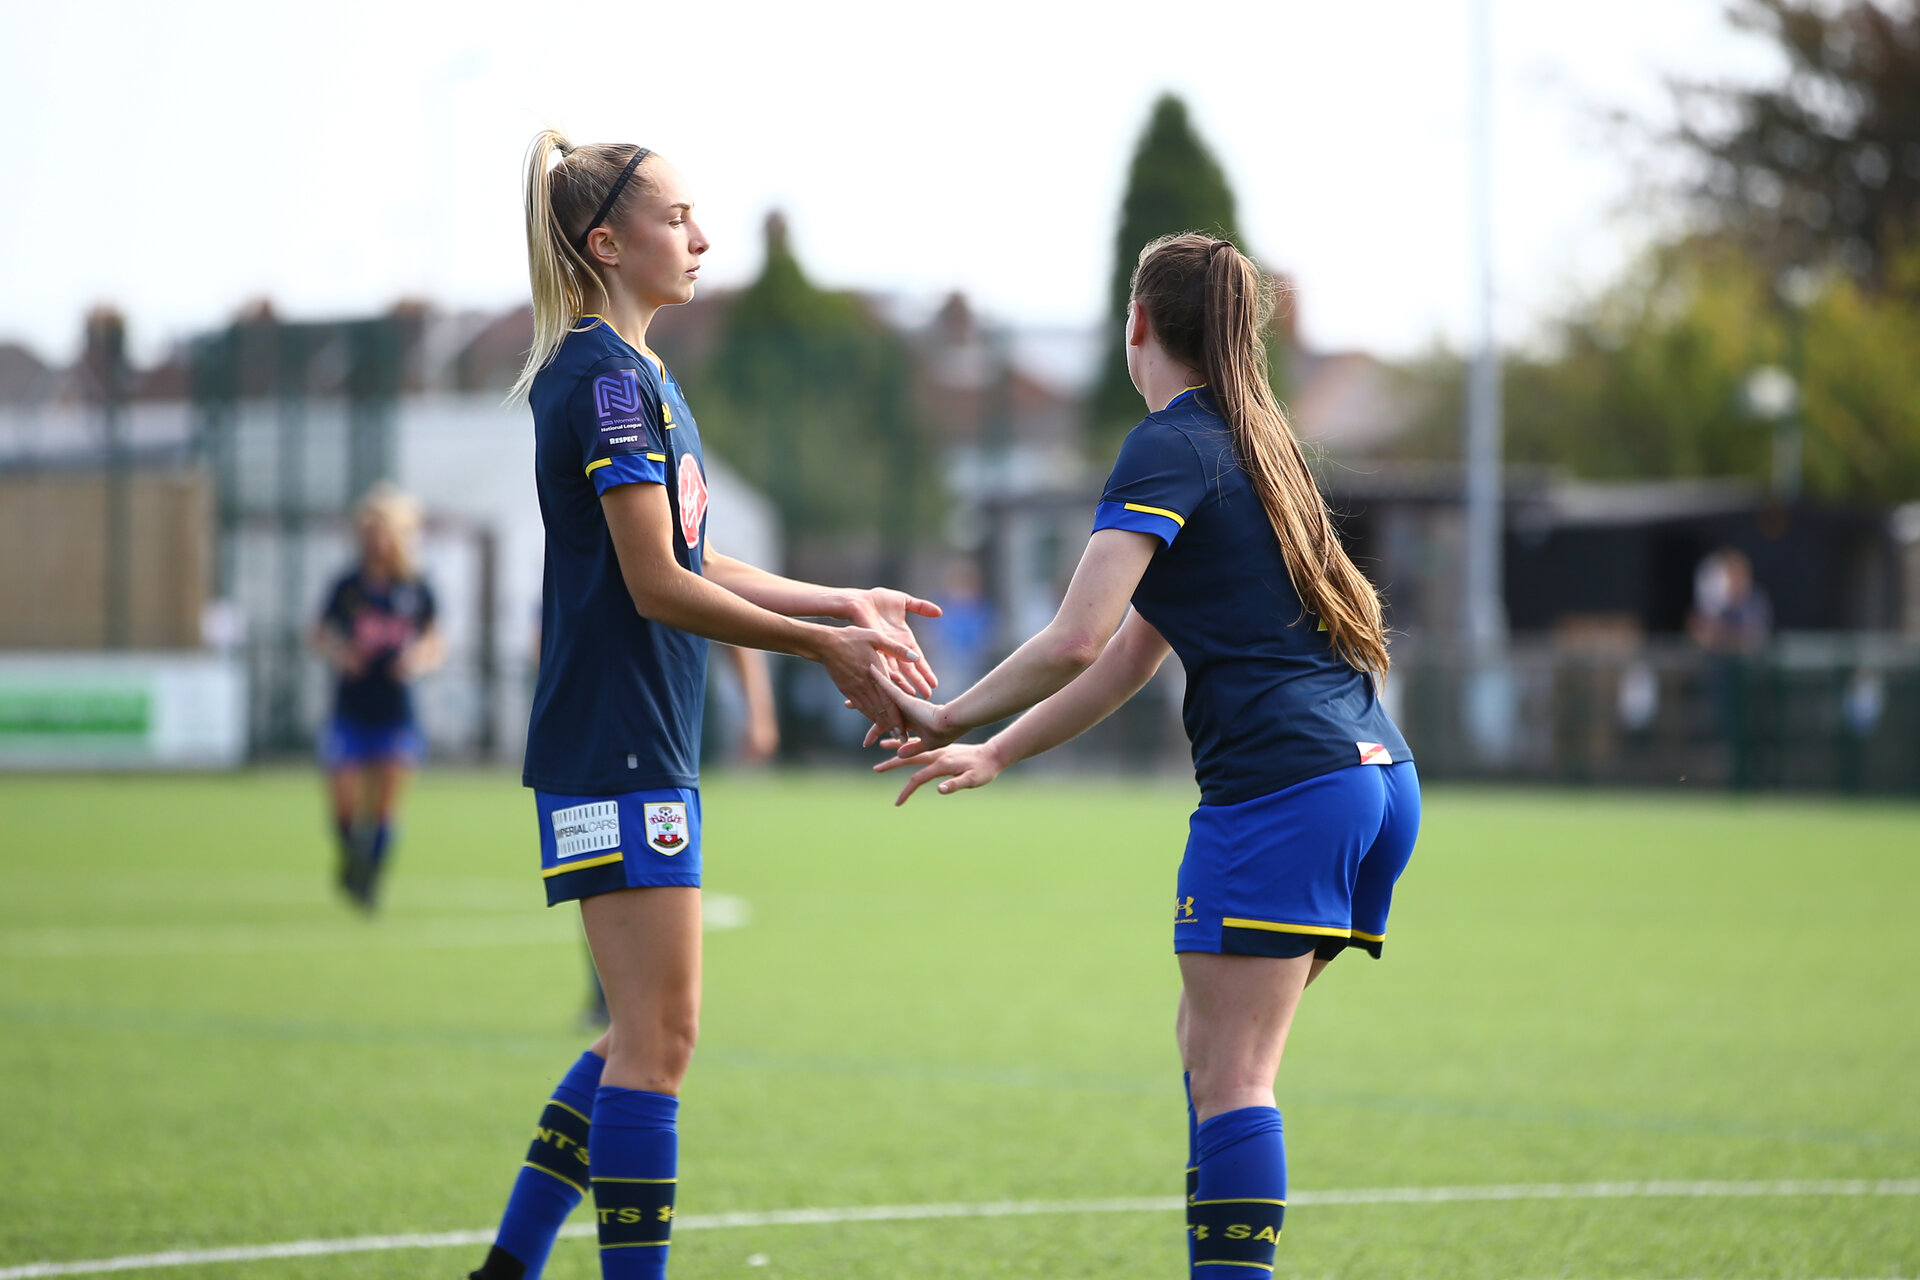 SOUTHAMPTON, ENGLAND - SEPTEMBER 20: Phoebe Williams (L) and Georgie Freeland (R) celebrates Georgie Freeland goal during the FAWNL match between Southampton Women and Poole Town FC at Specsavers County Ground on September 20, 2020 in Poole, England. (Photo by Isabelle Field/Southampton FC via Getty Images)